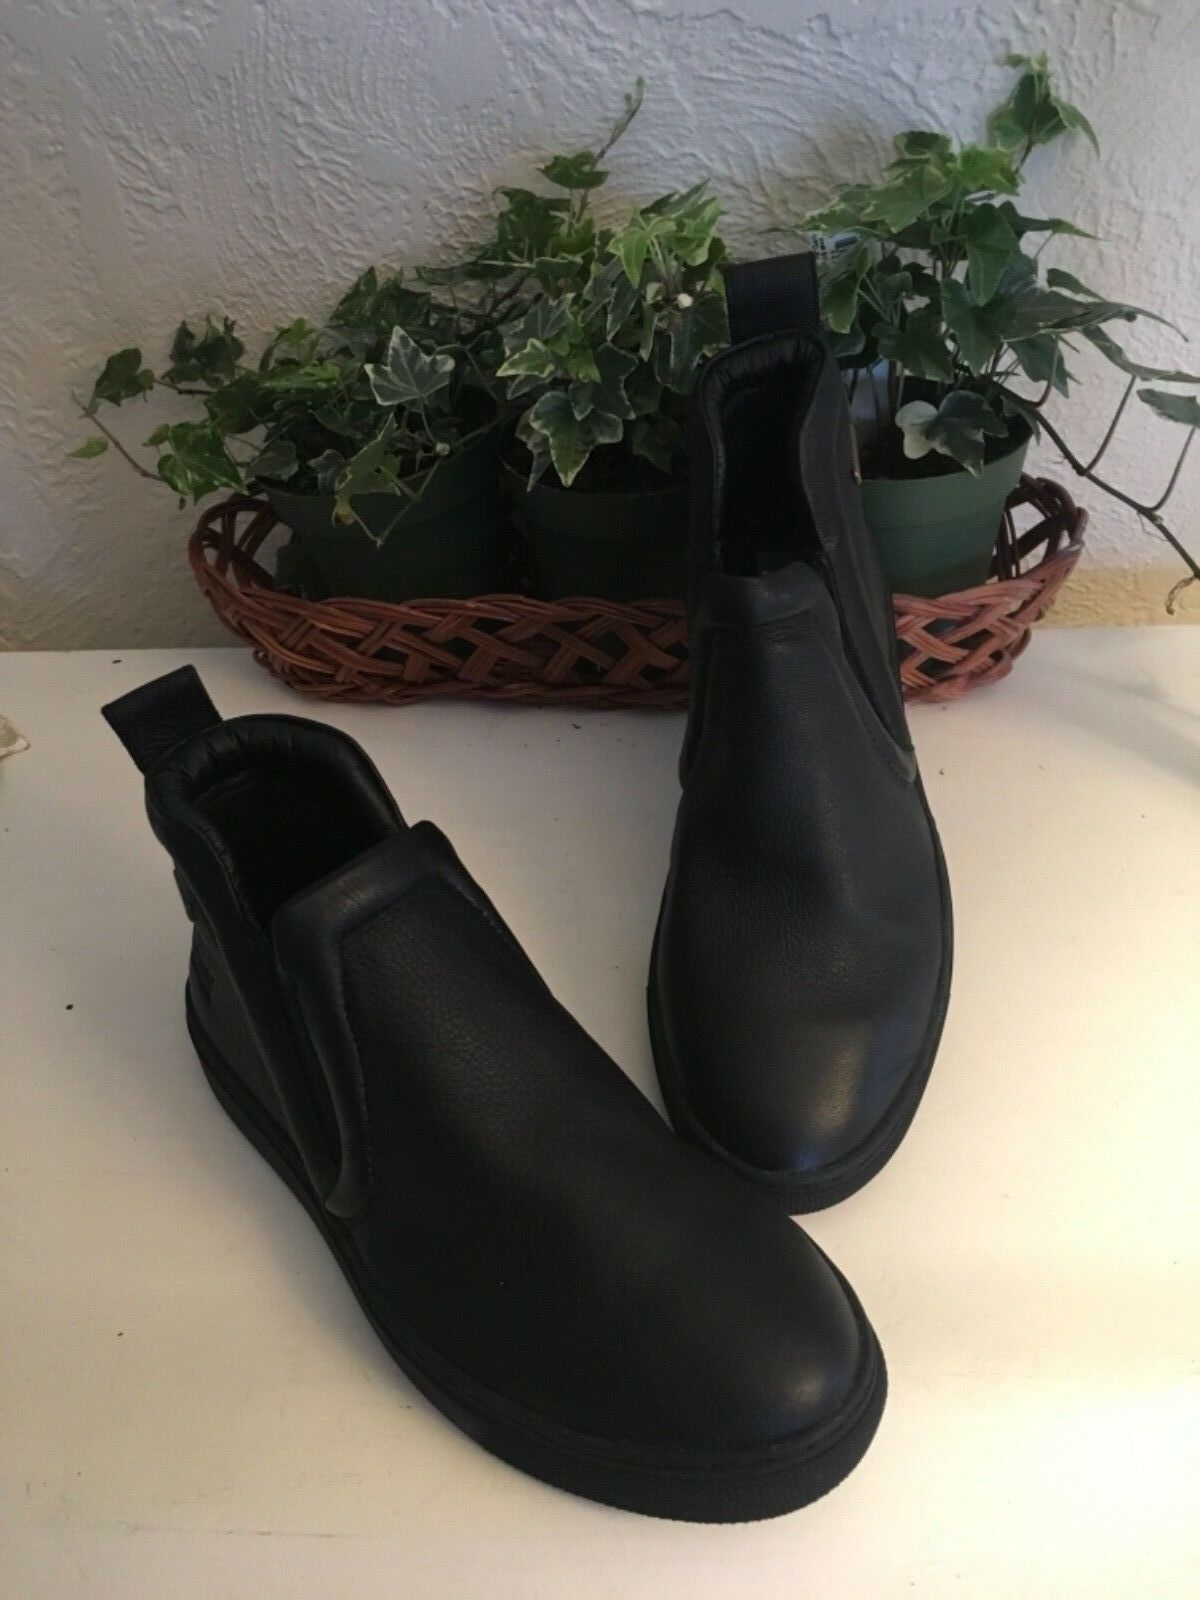 Cougar waterproof Leather Ankle Boot Woman's Black Size 6 Medium New